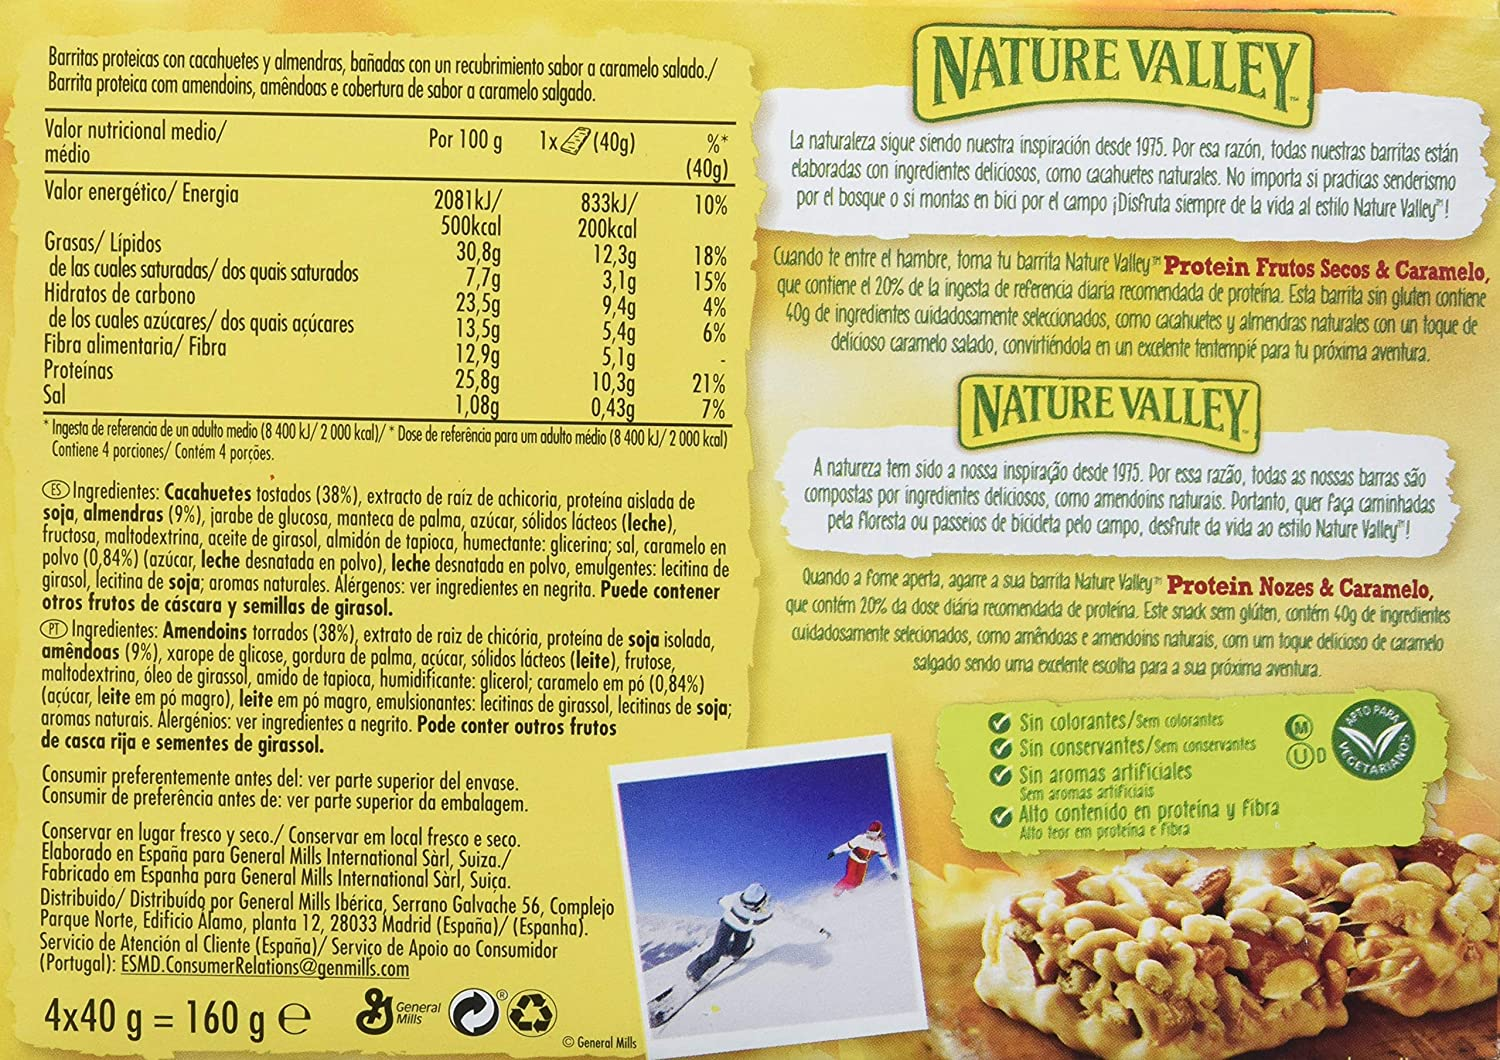 Nature Valley - Barritas de Proteinas con Salted Caramel Nut - Caja de 4 unidades: Amazon.es: Amazon Pantry